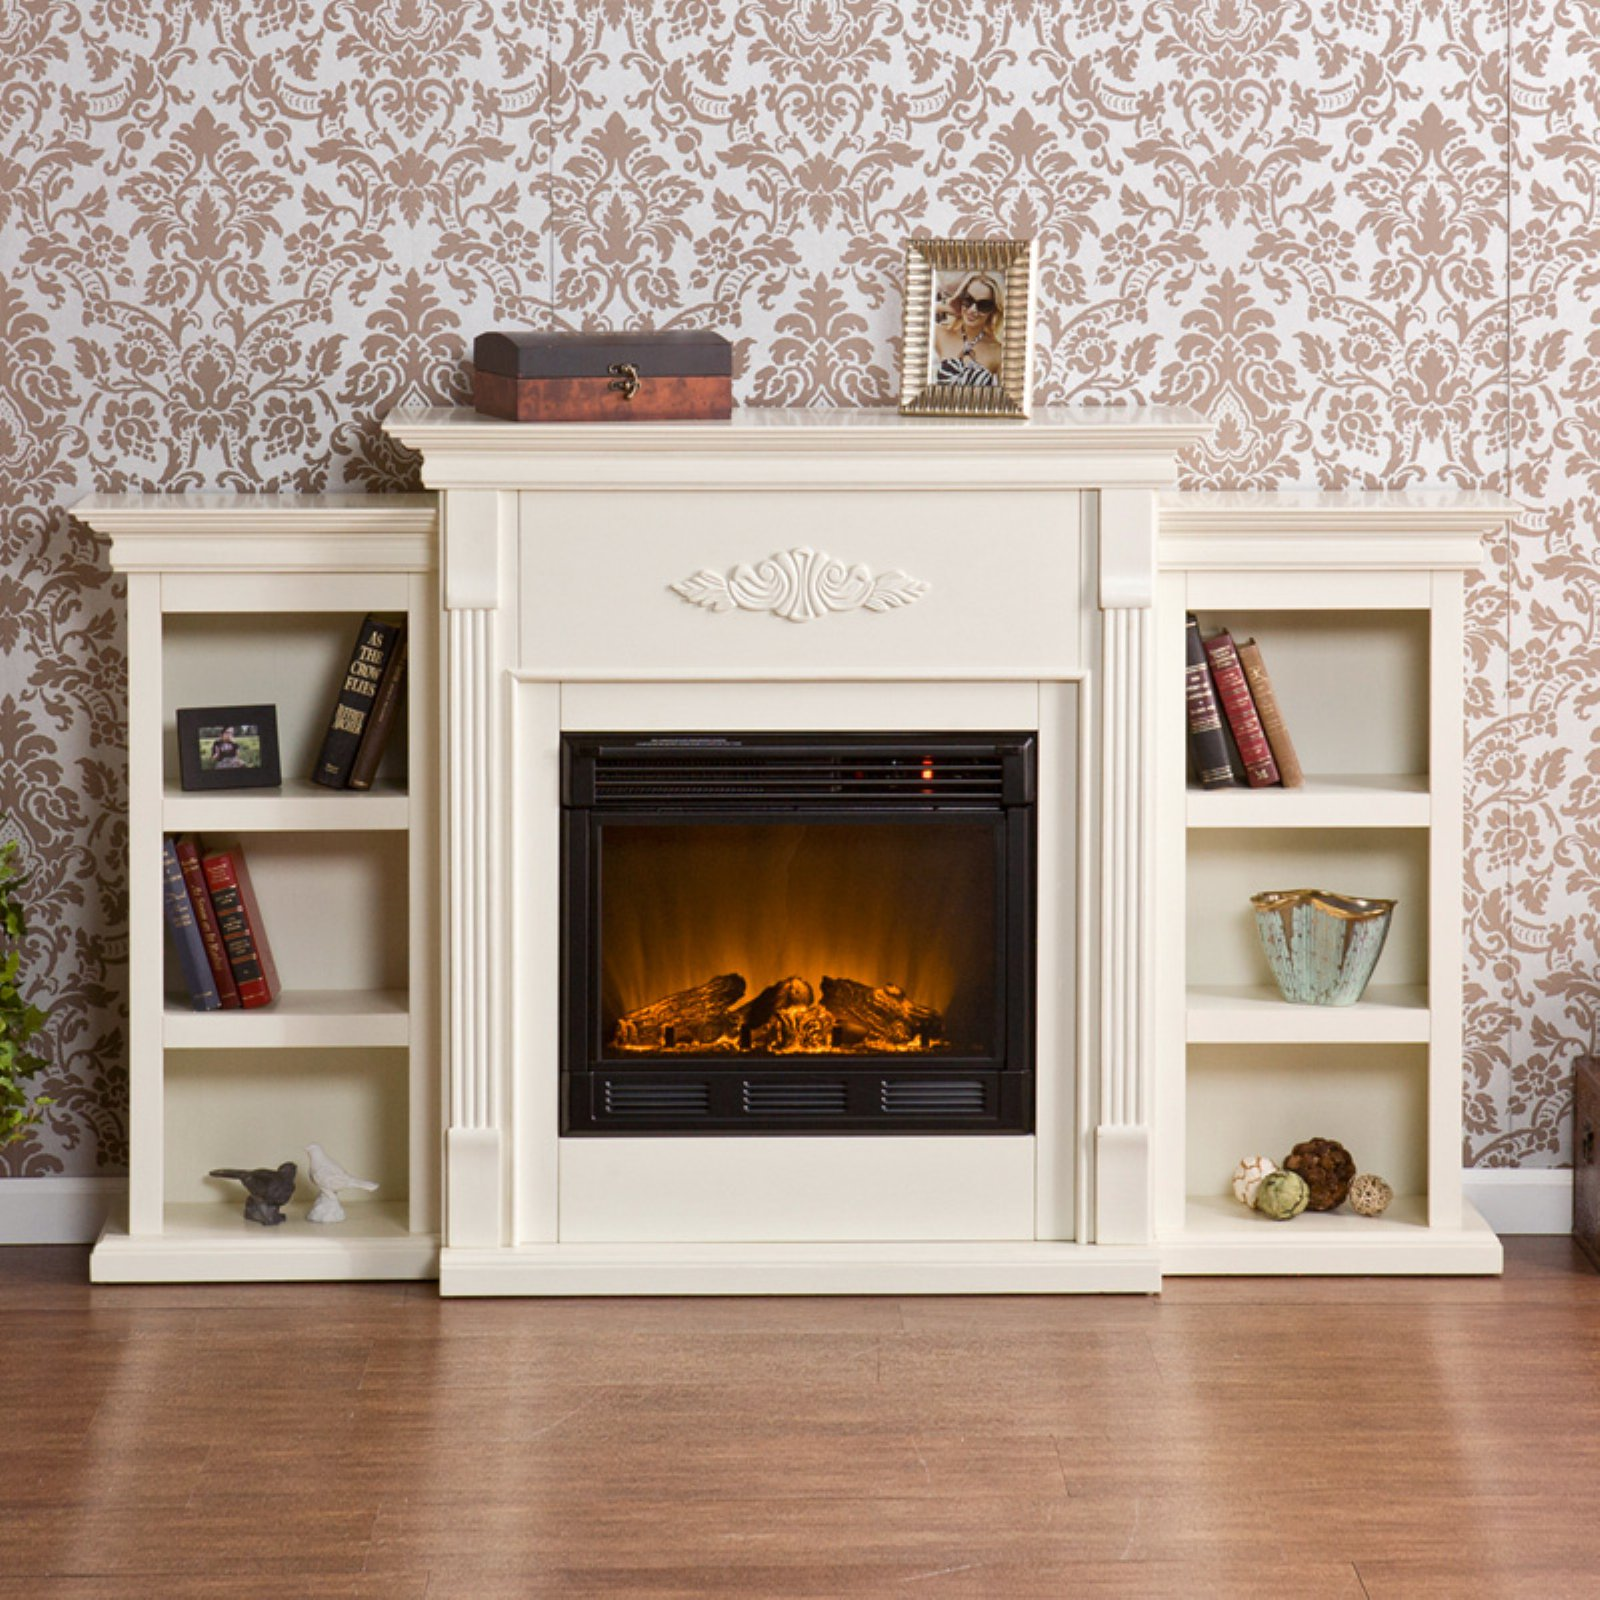 Southern Enterprises Tennyson Ivory Electric Fireplace with Bookcases by Southern Enterprises